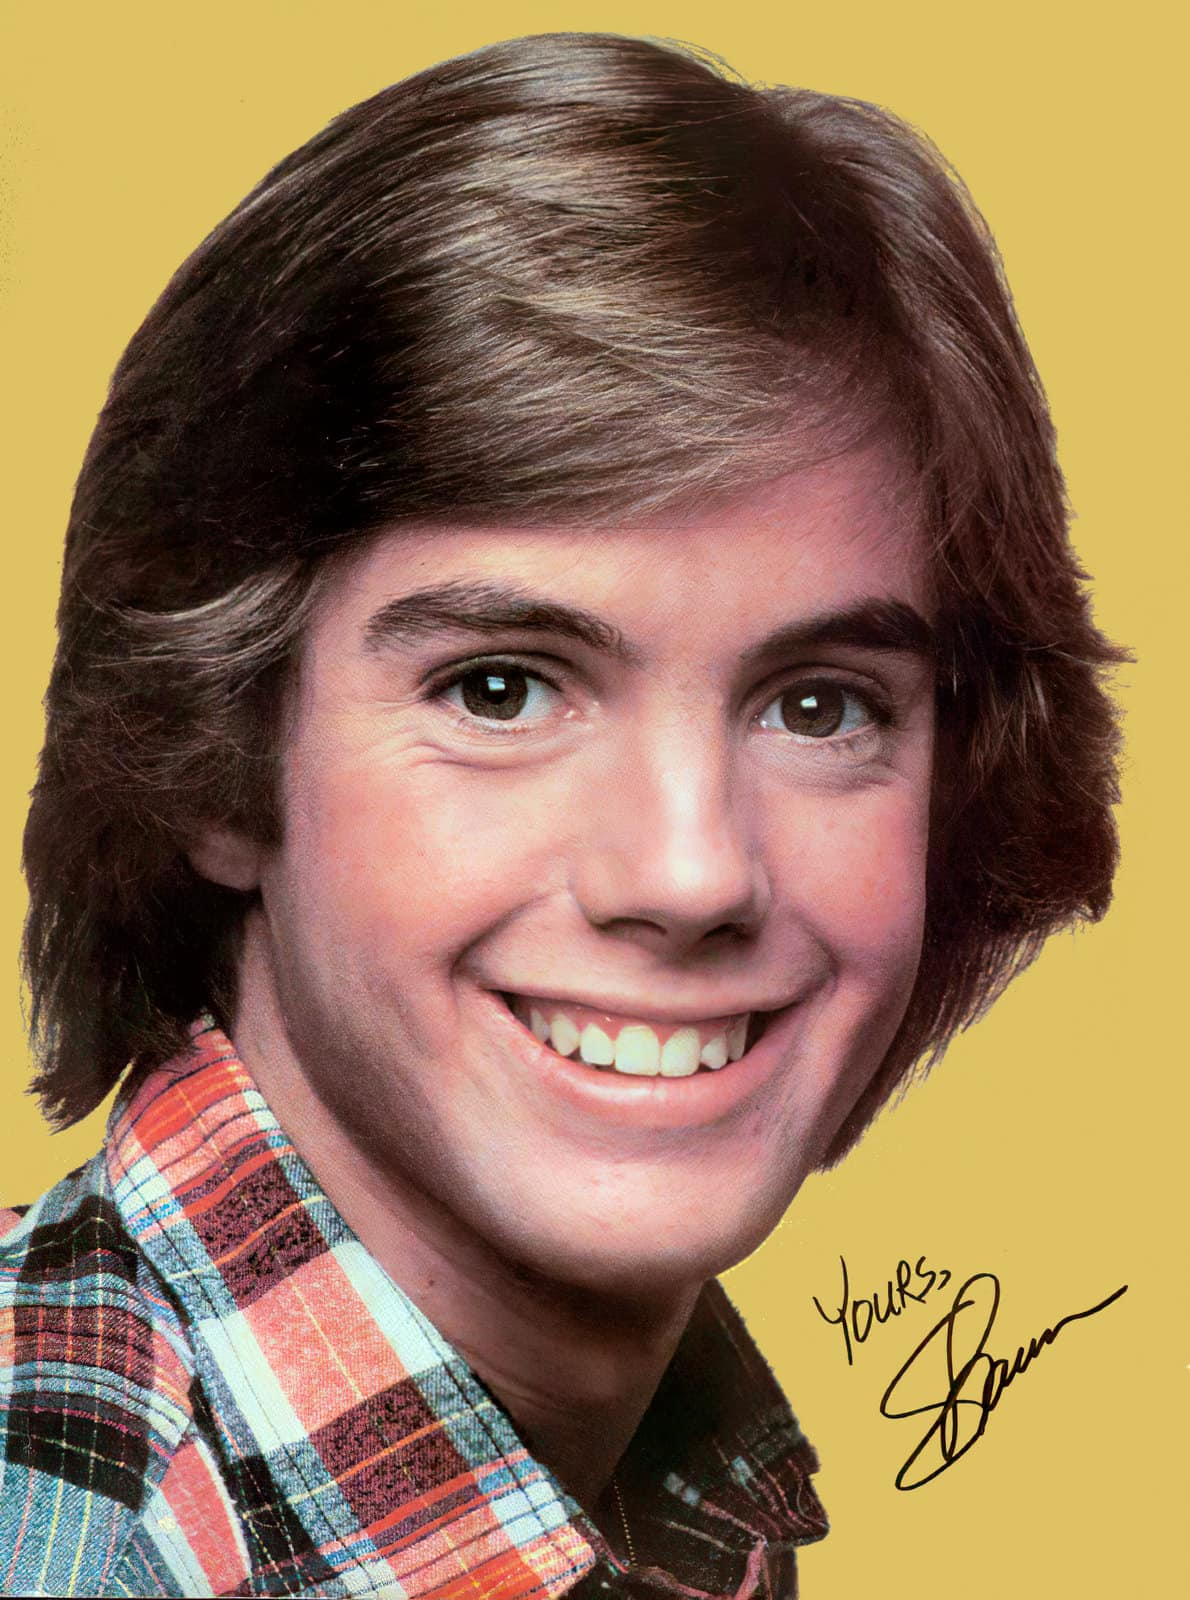 Vintage 1970s Shaun Cassidy poster